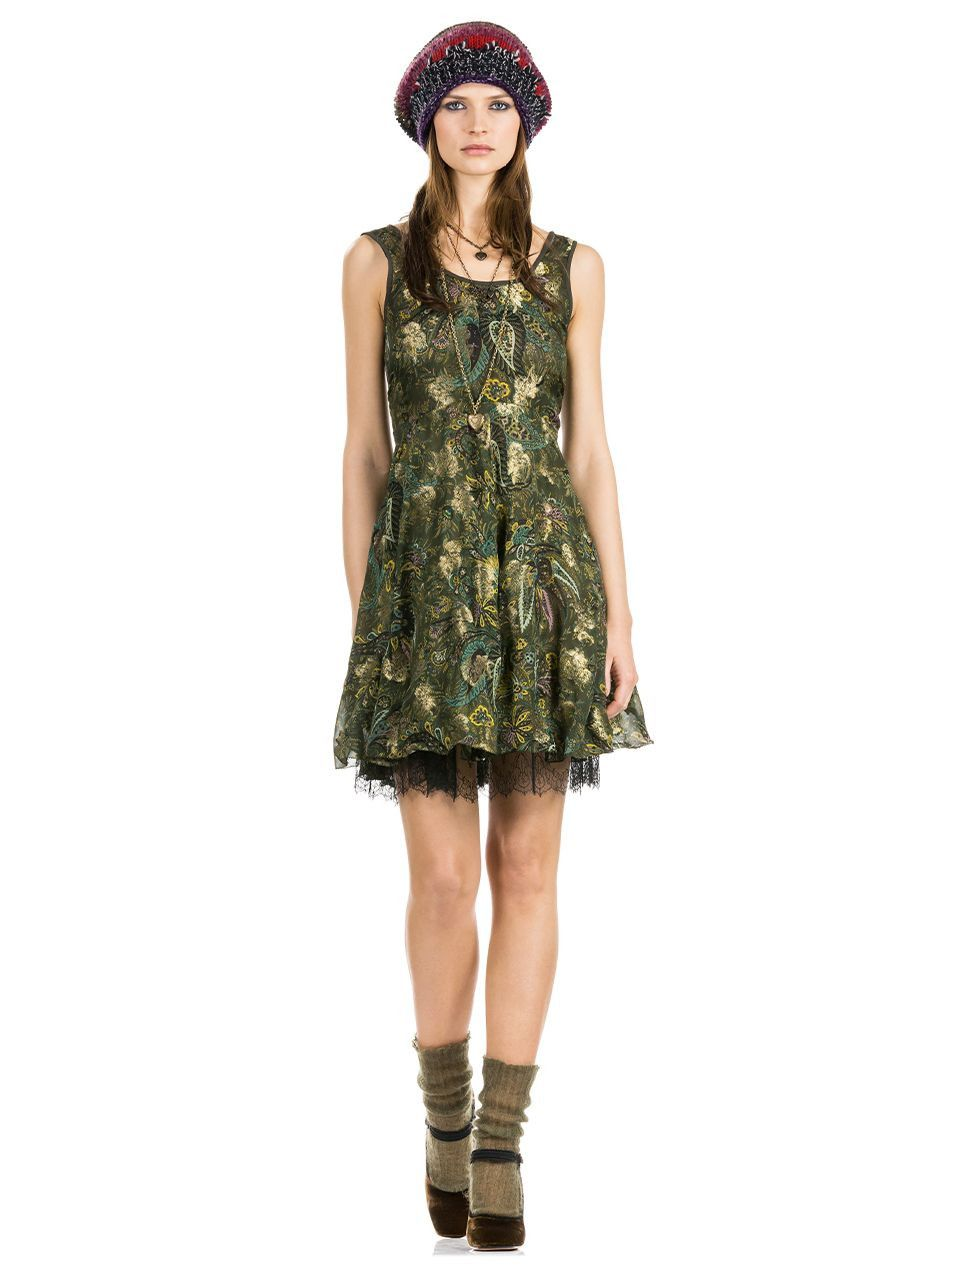 etro flared dress with lace details 162d1839053520500 12